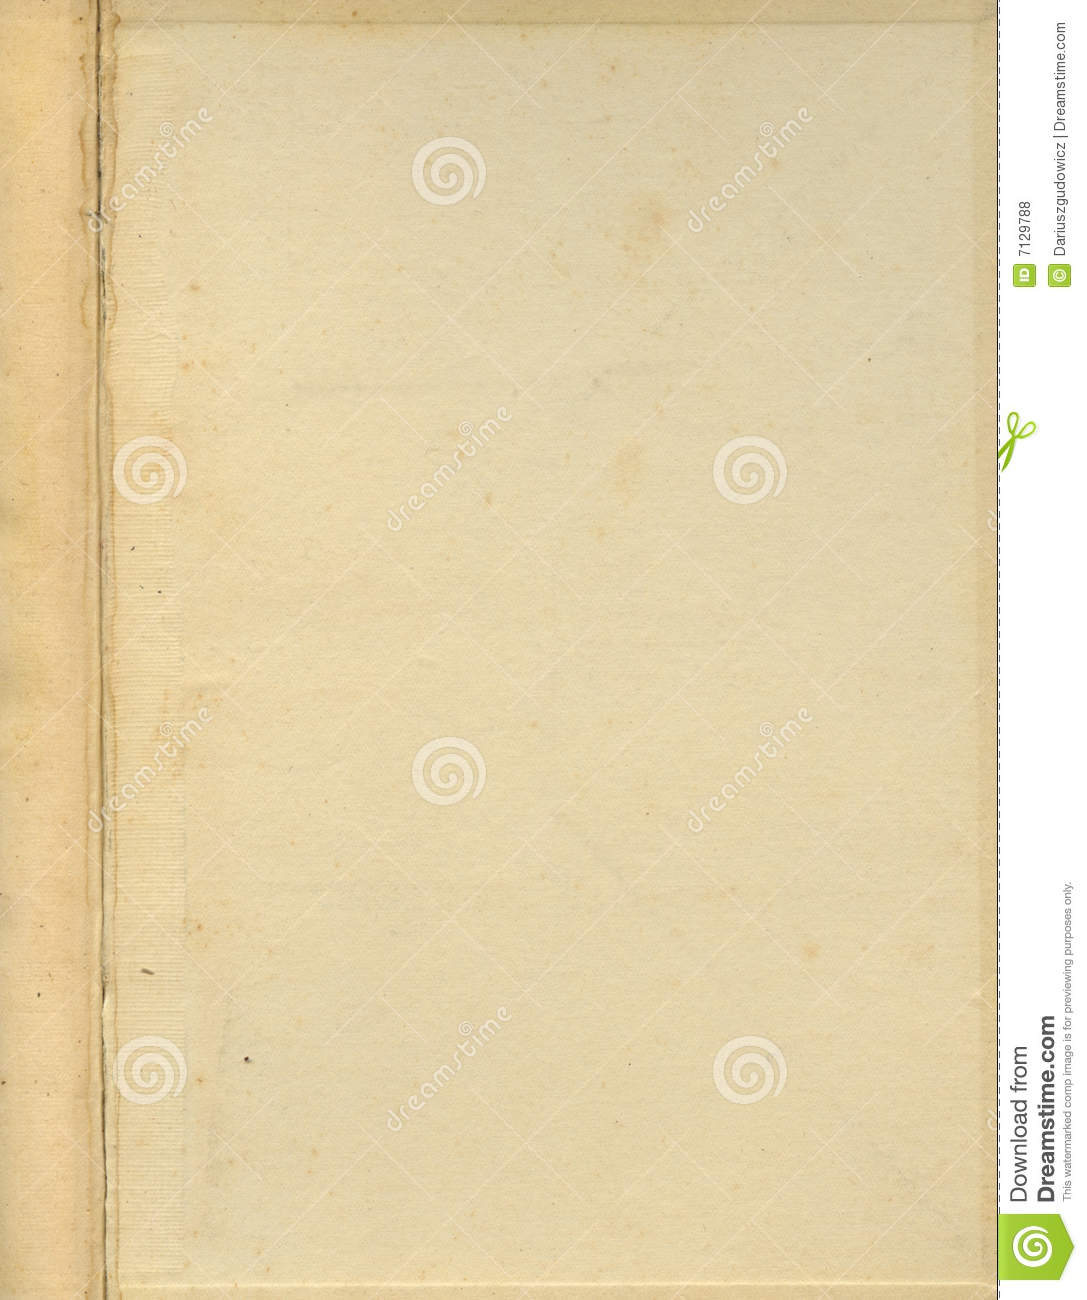 Book Cover Texture Ds Max : Old grunge book cover inside page stock photo image